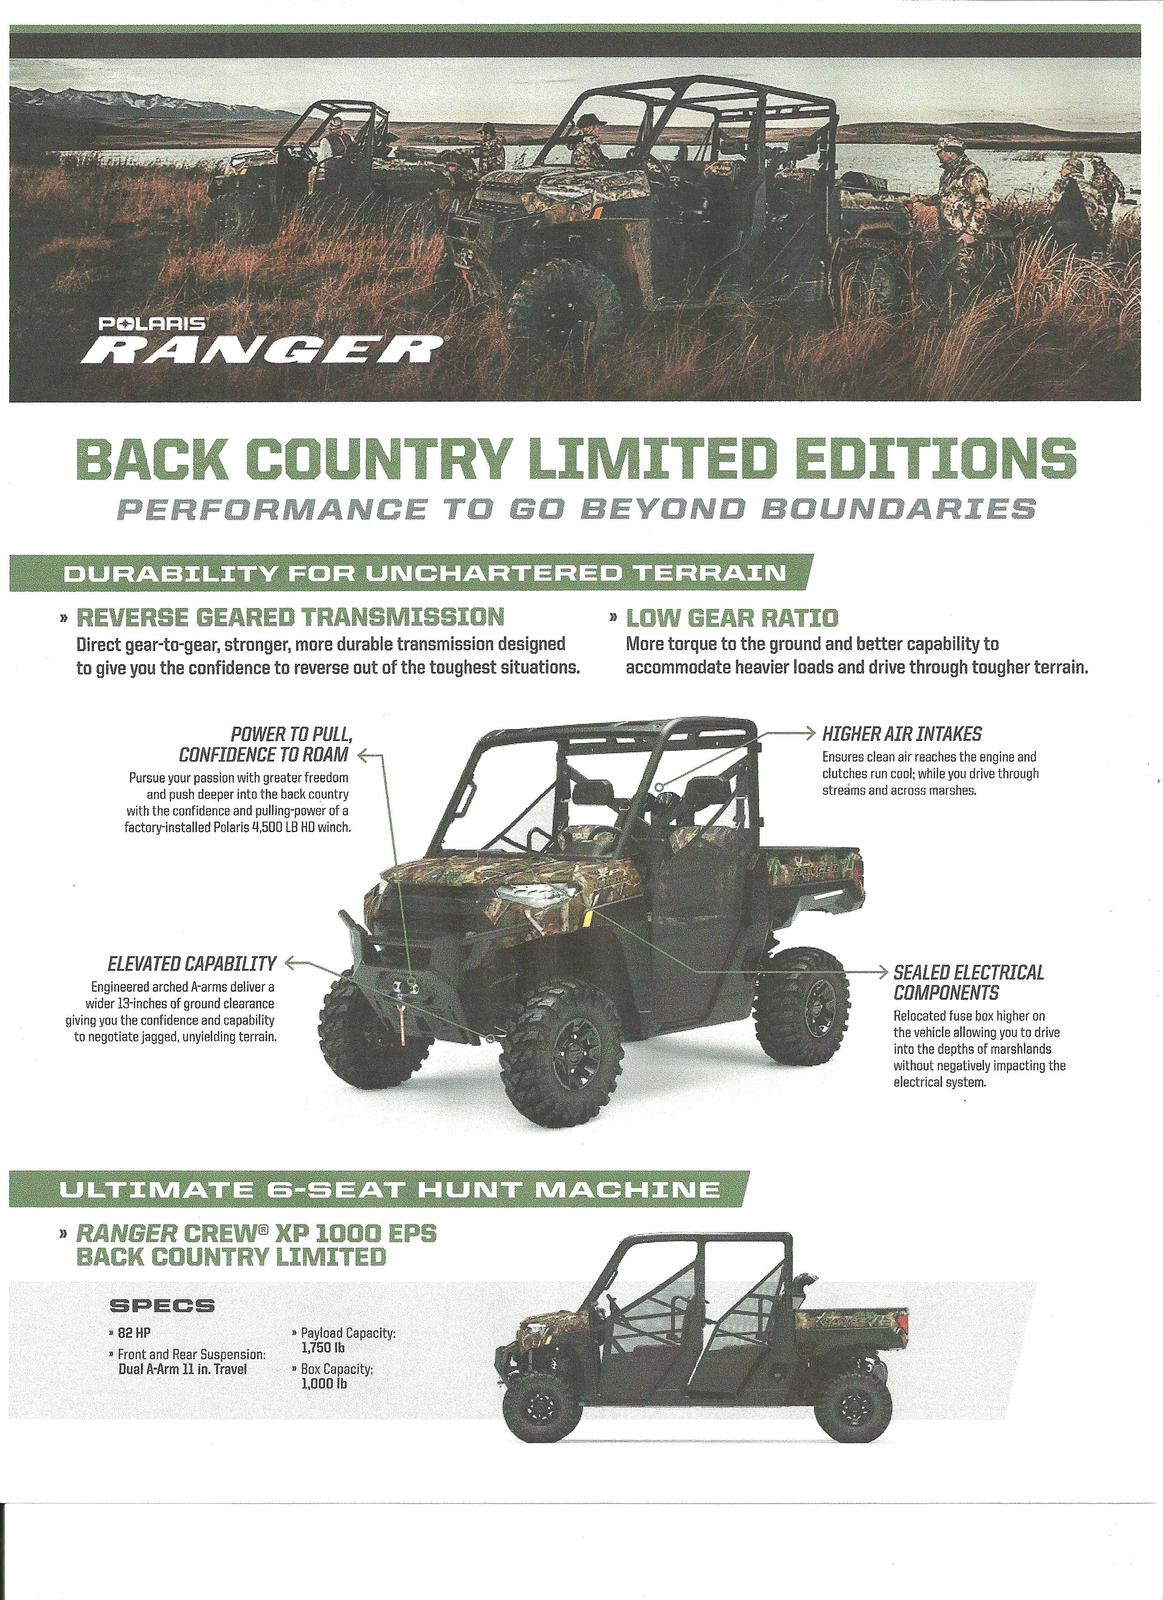 New Side x Side and ATV from Polaris Industries Mittelstaedt